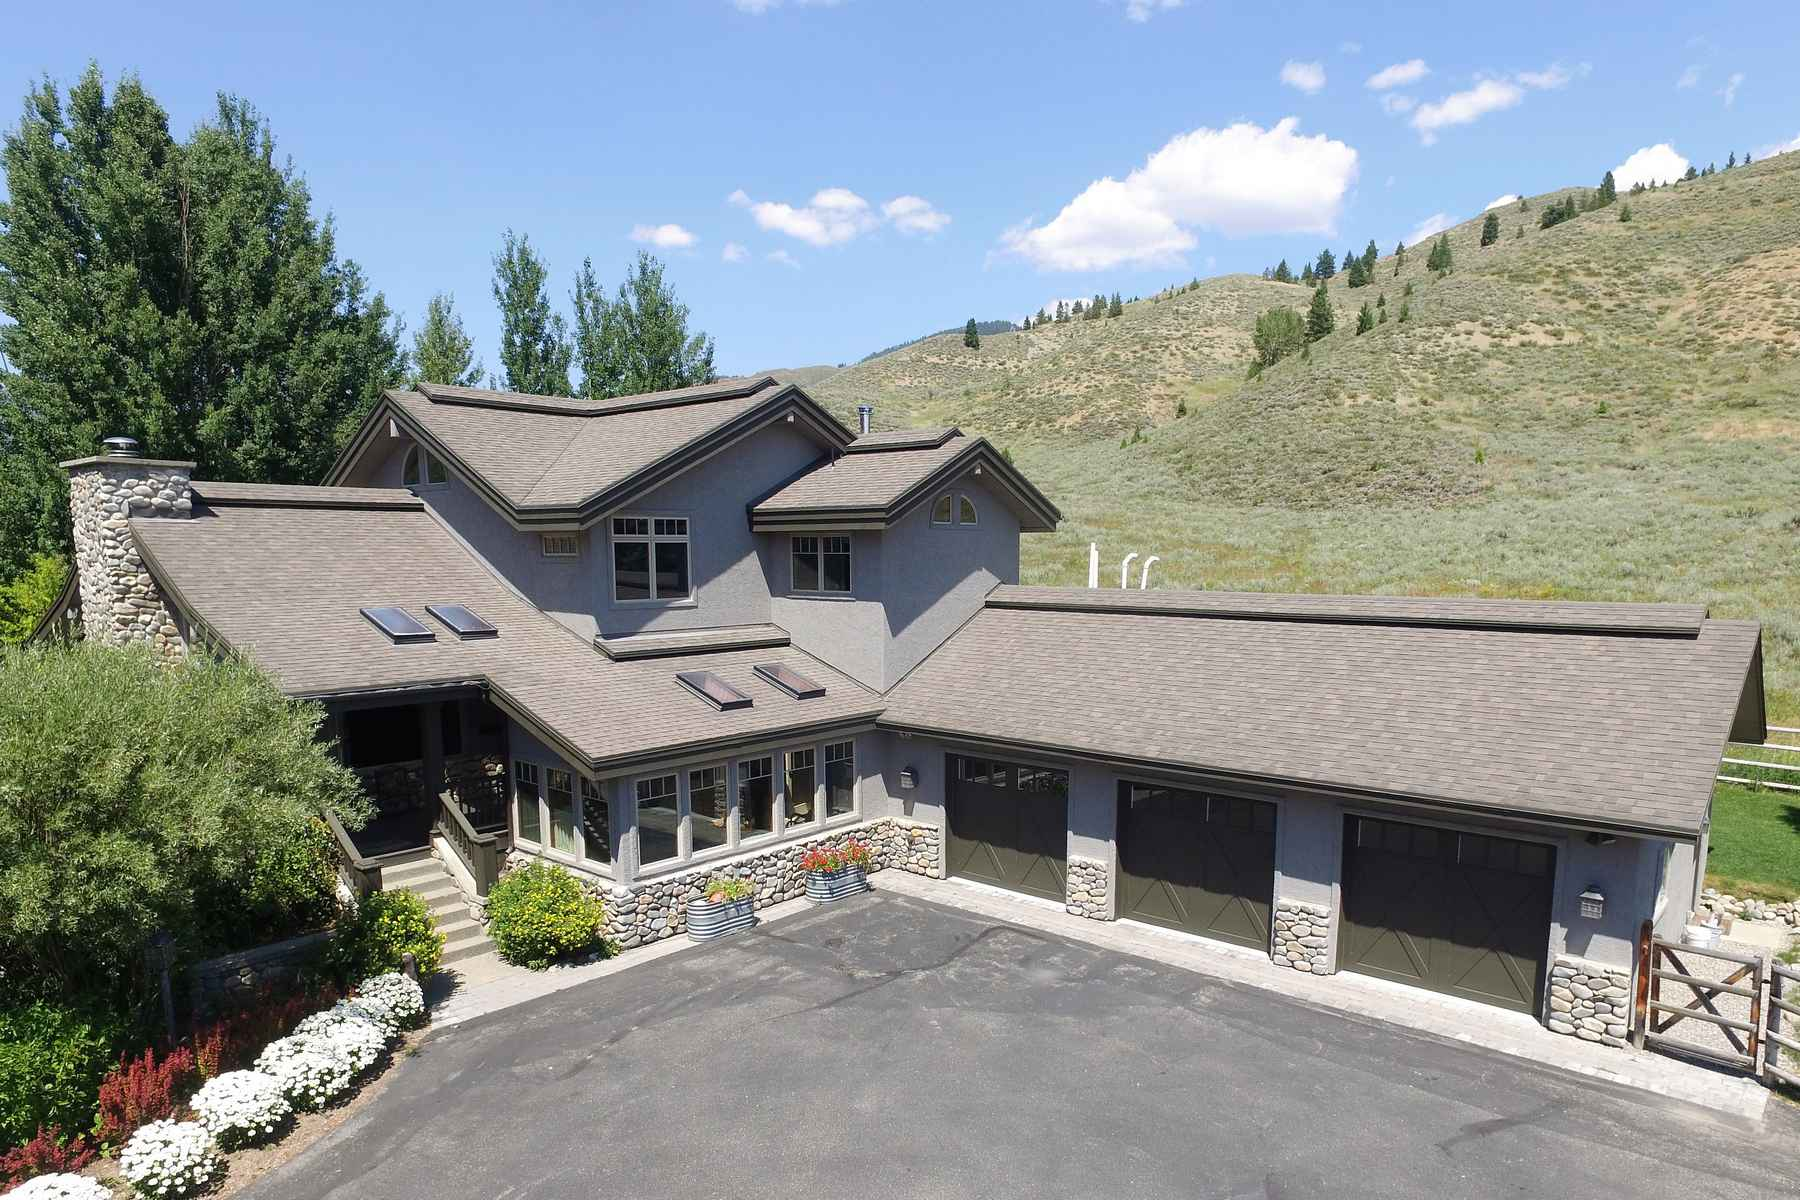 Single Family Home for Sale at The Quintessential Idaho Home 13391 Highway 75, North Of Ketchum, Ketchum, Idaho, 83340 United States